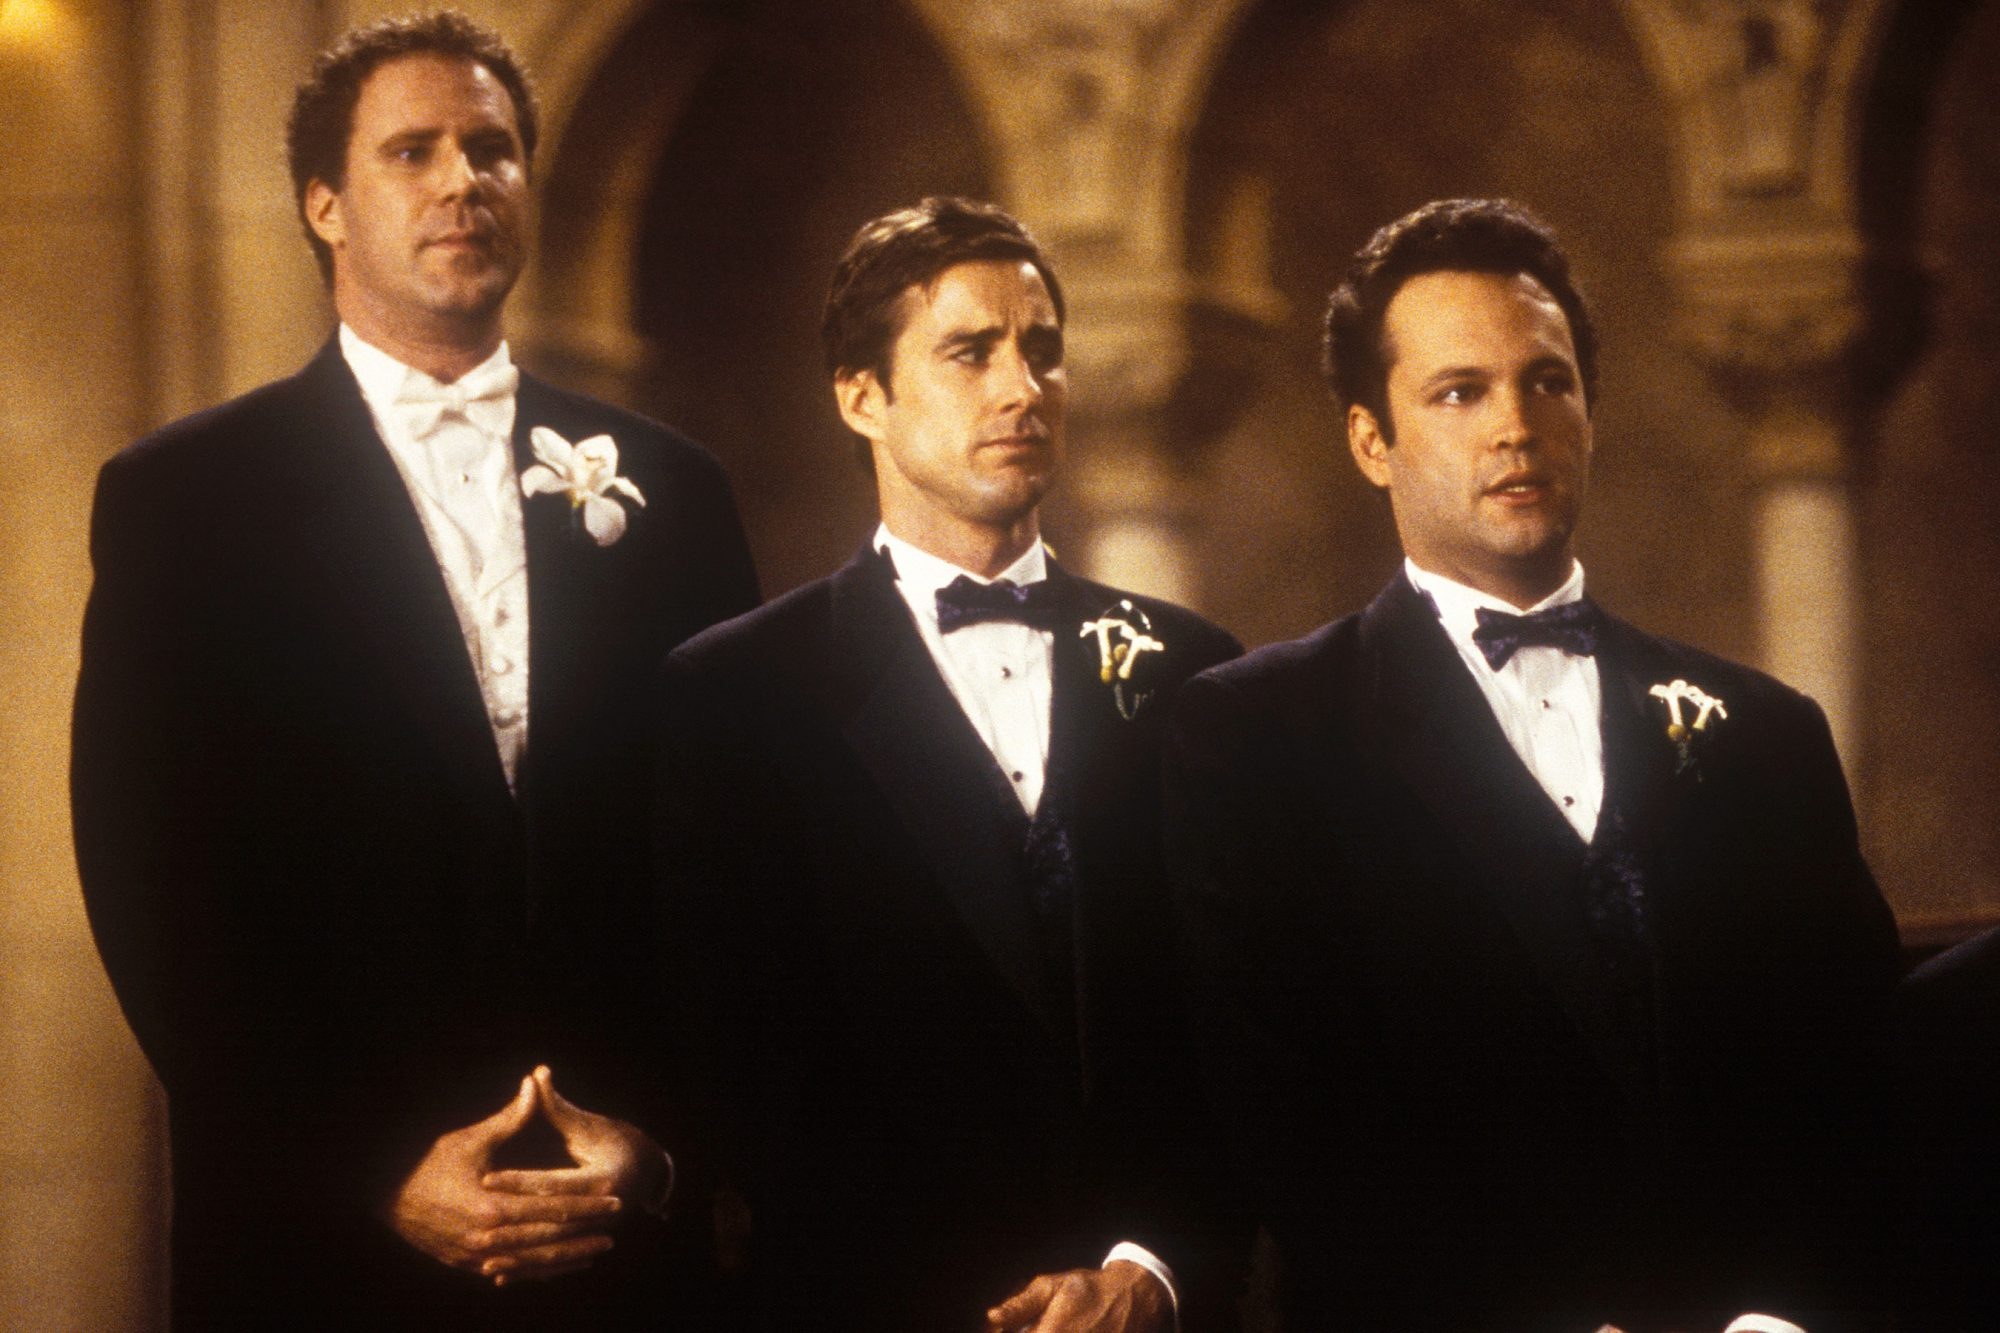 Old School (2003)l to R: Will Ferrell, Luke Wilson and Vince Vaughn